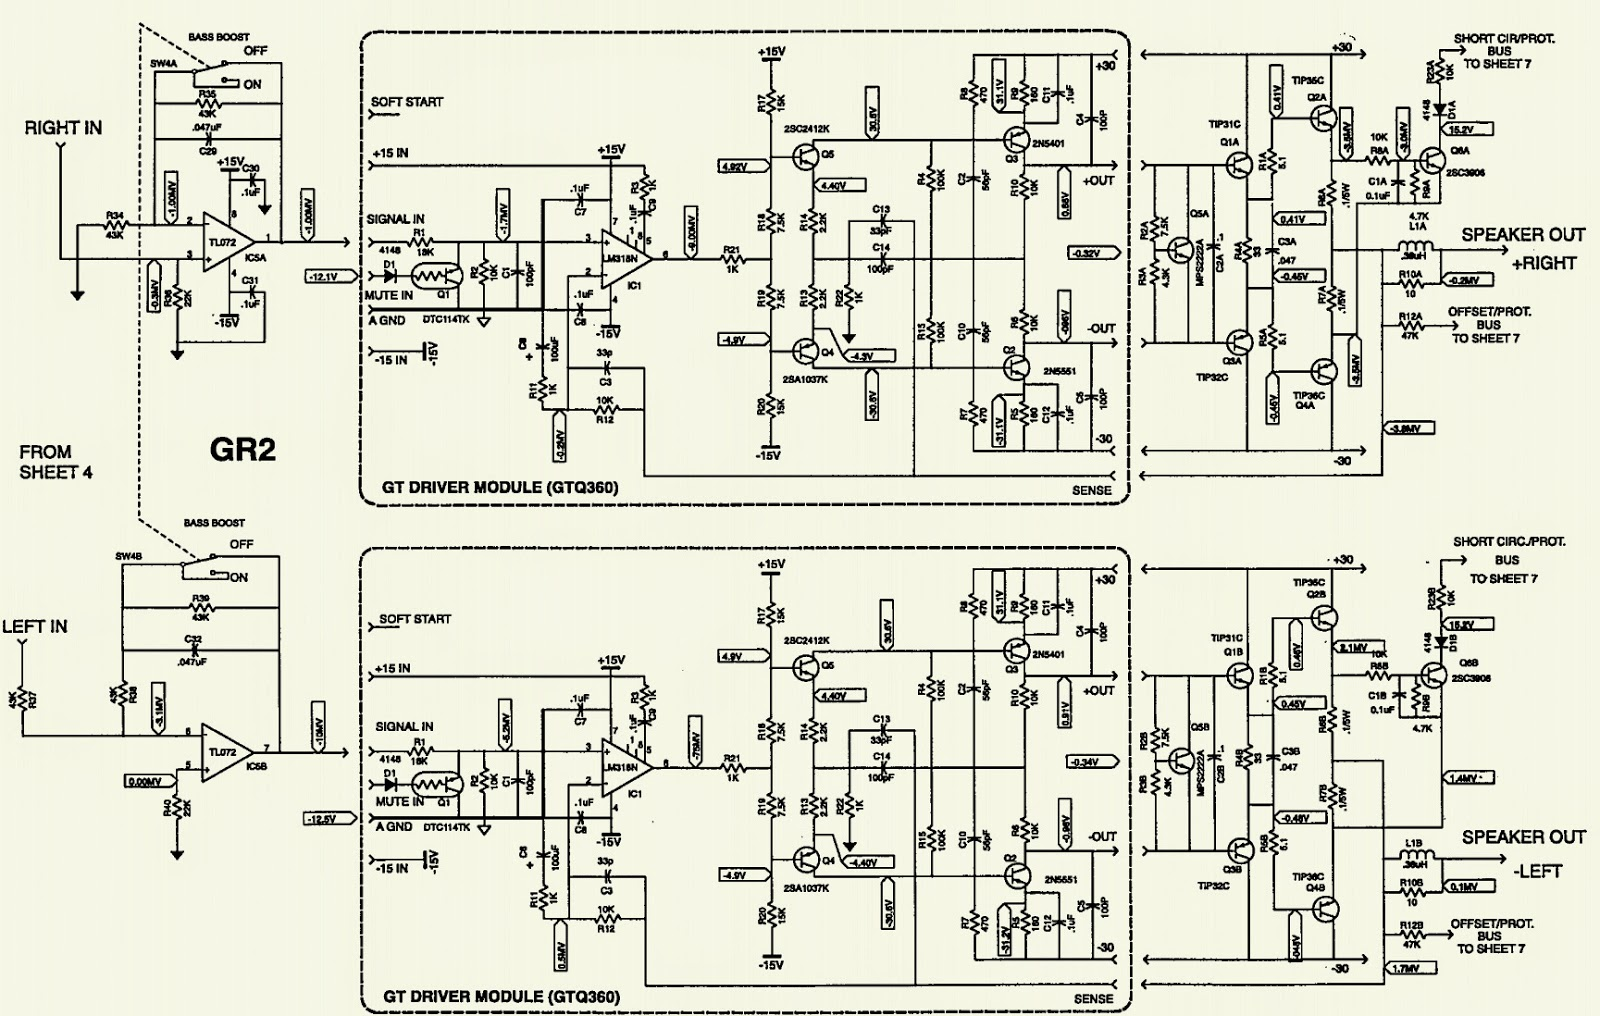 JBL JTQ360 - CAR AUDIO - SCHEMATIC [Circuit Diagram] | Electro help